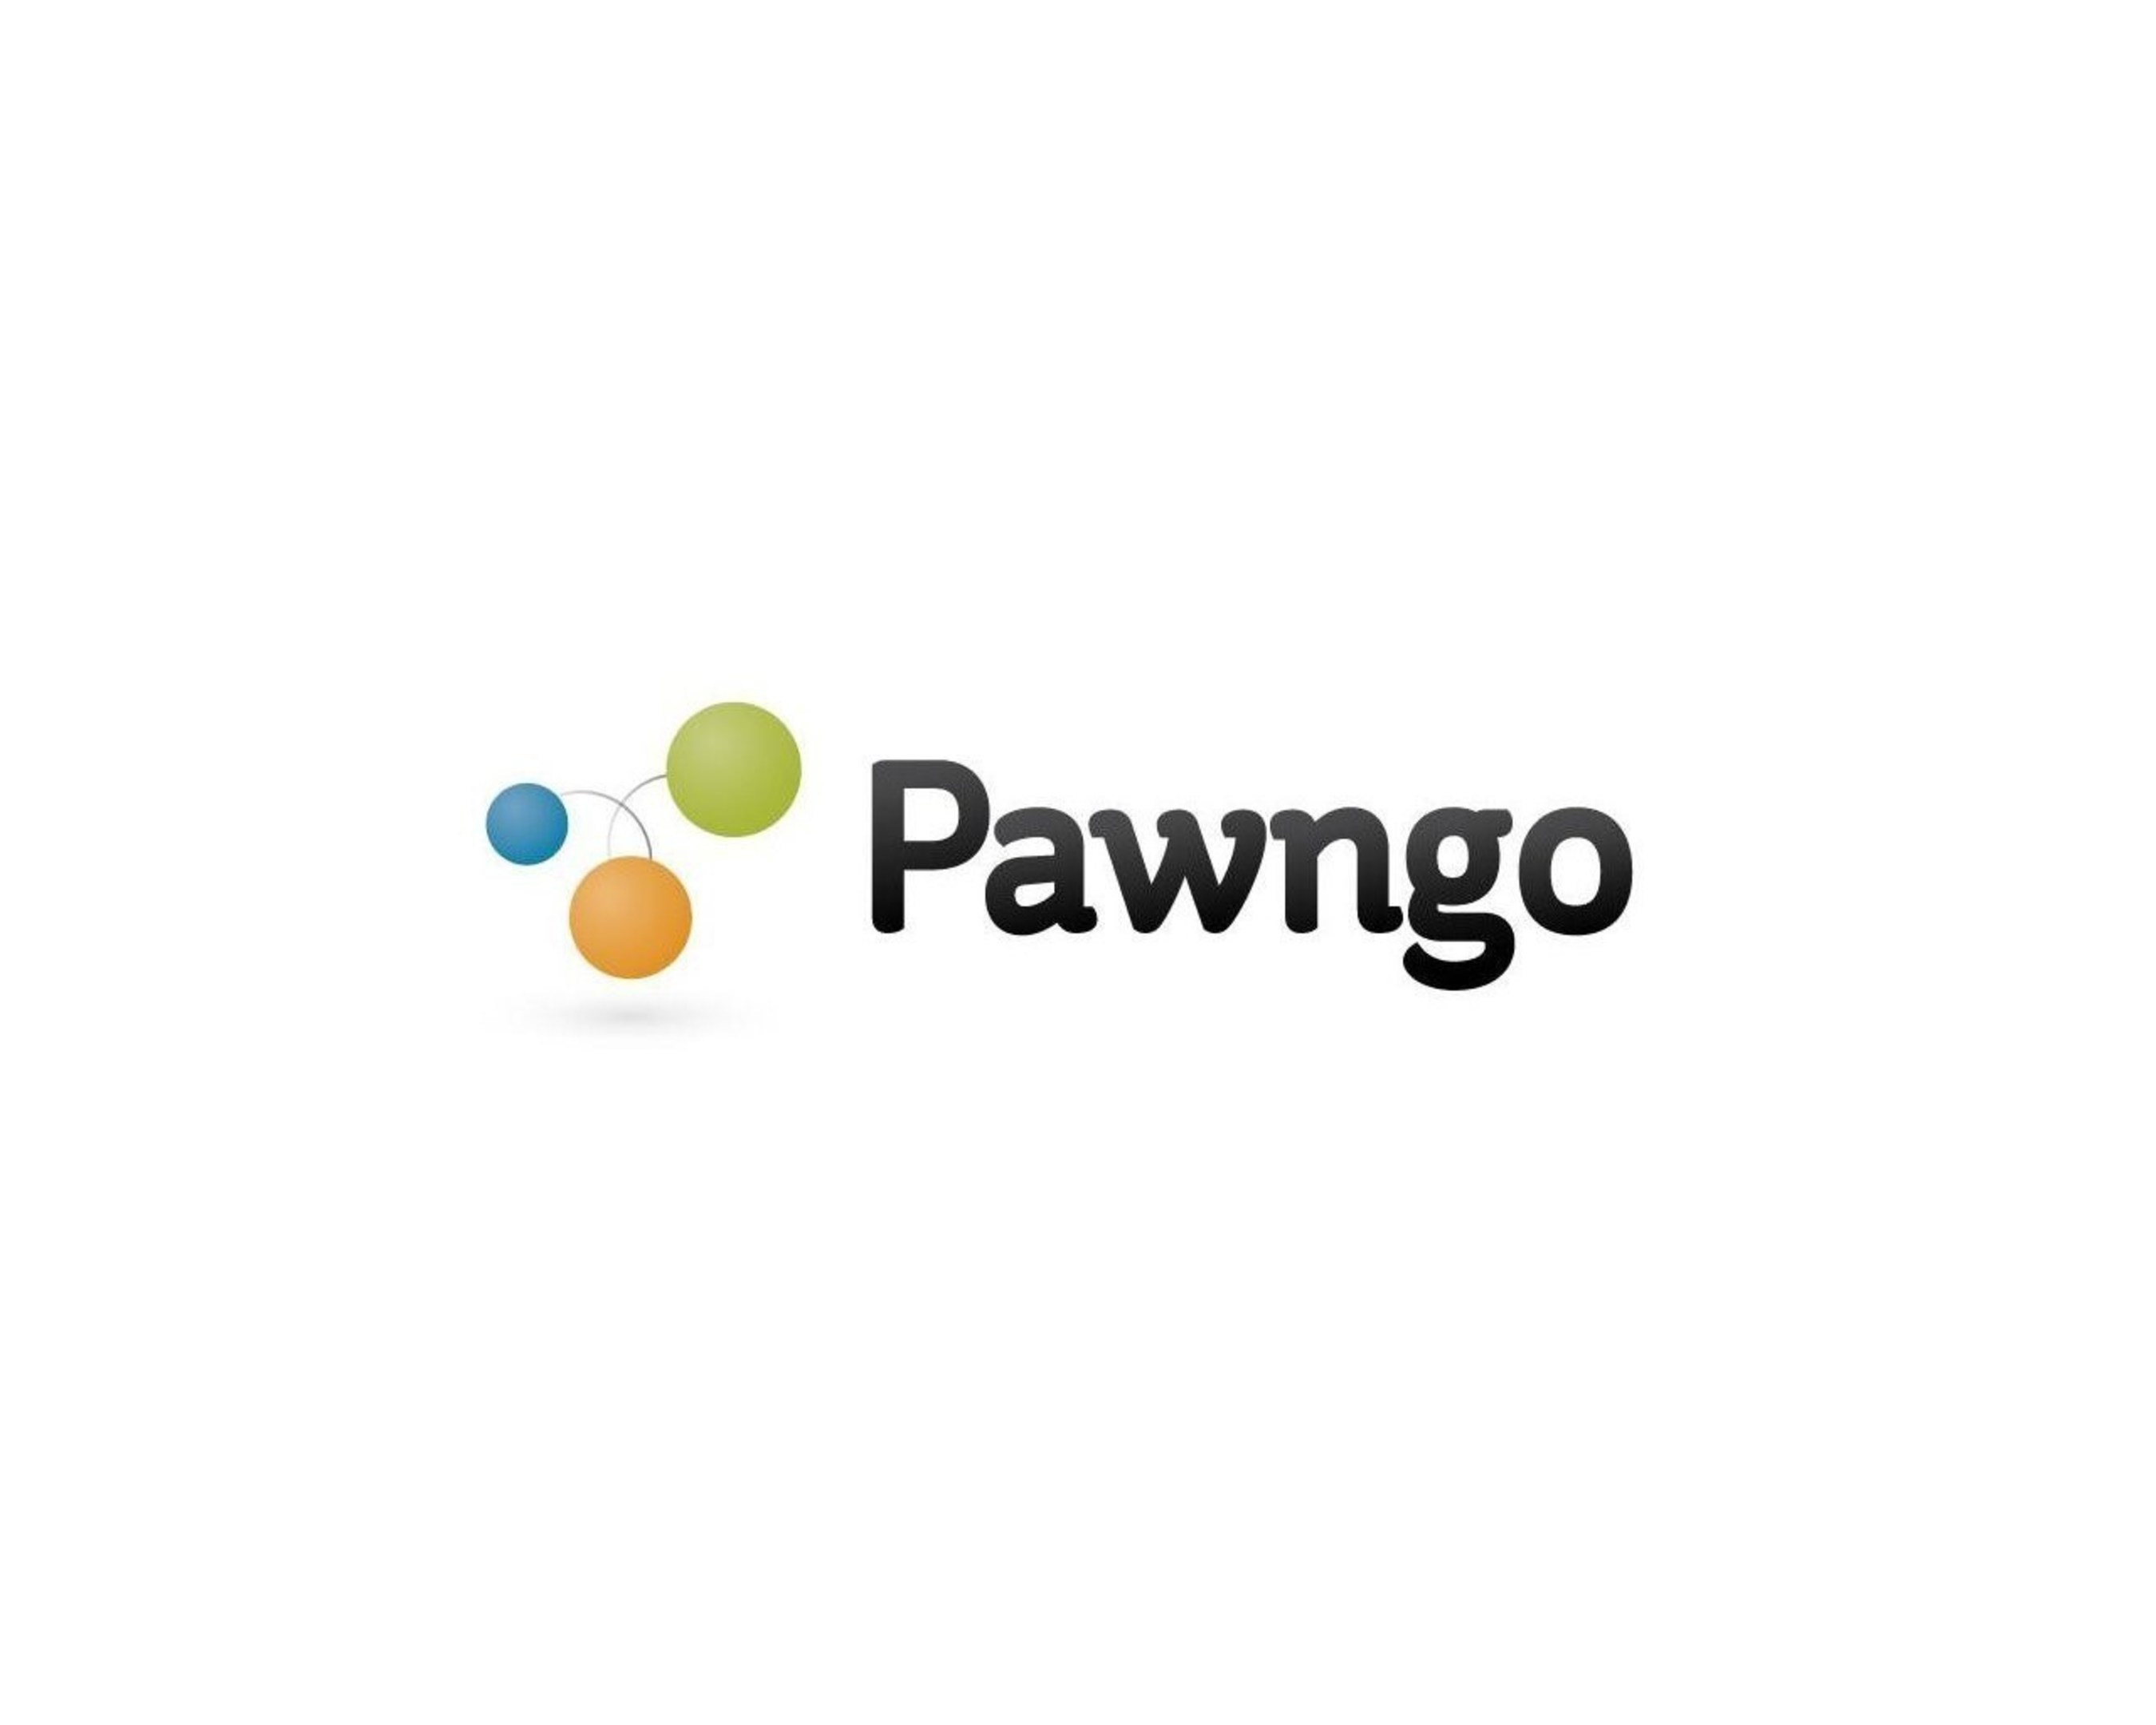 Pawngo Beats eBay, Craigslist for Getting Quick Cash